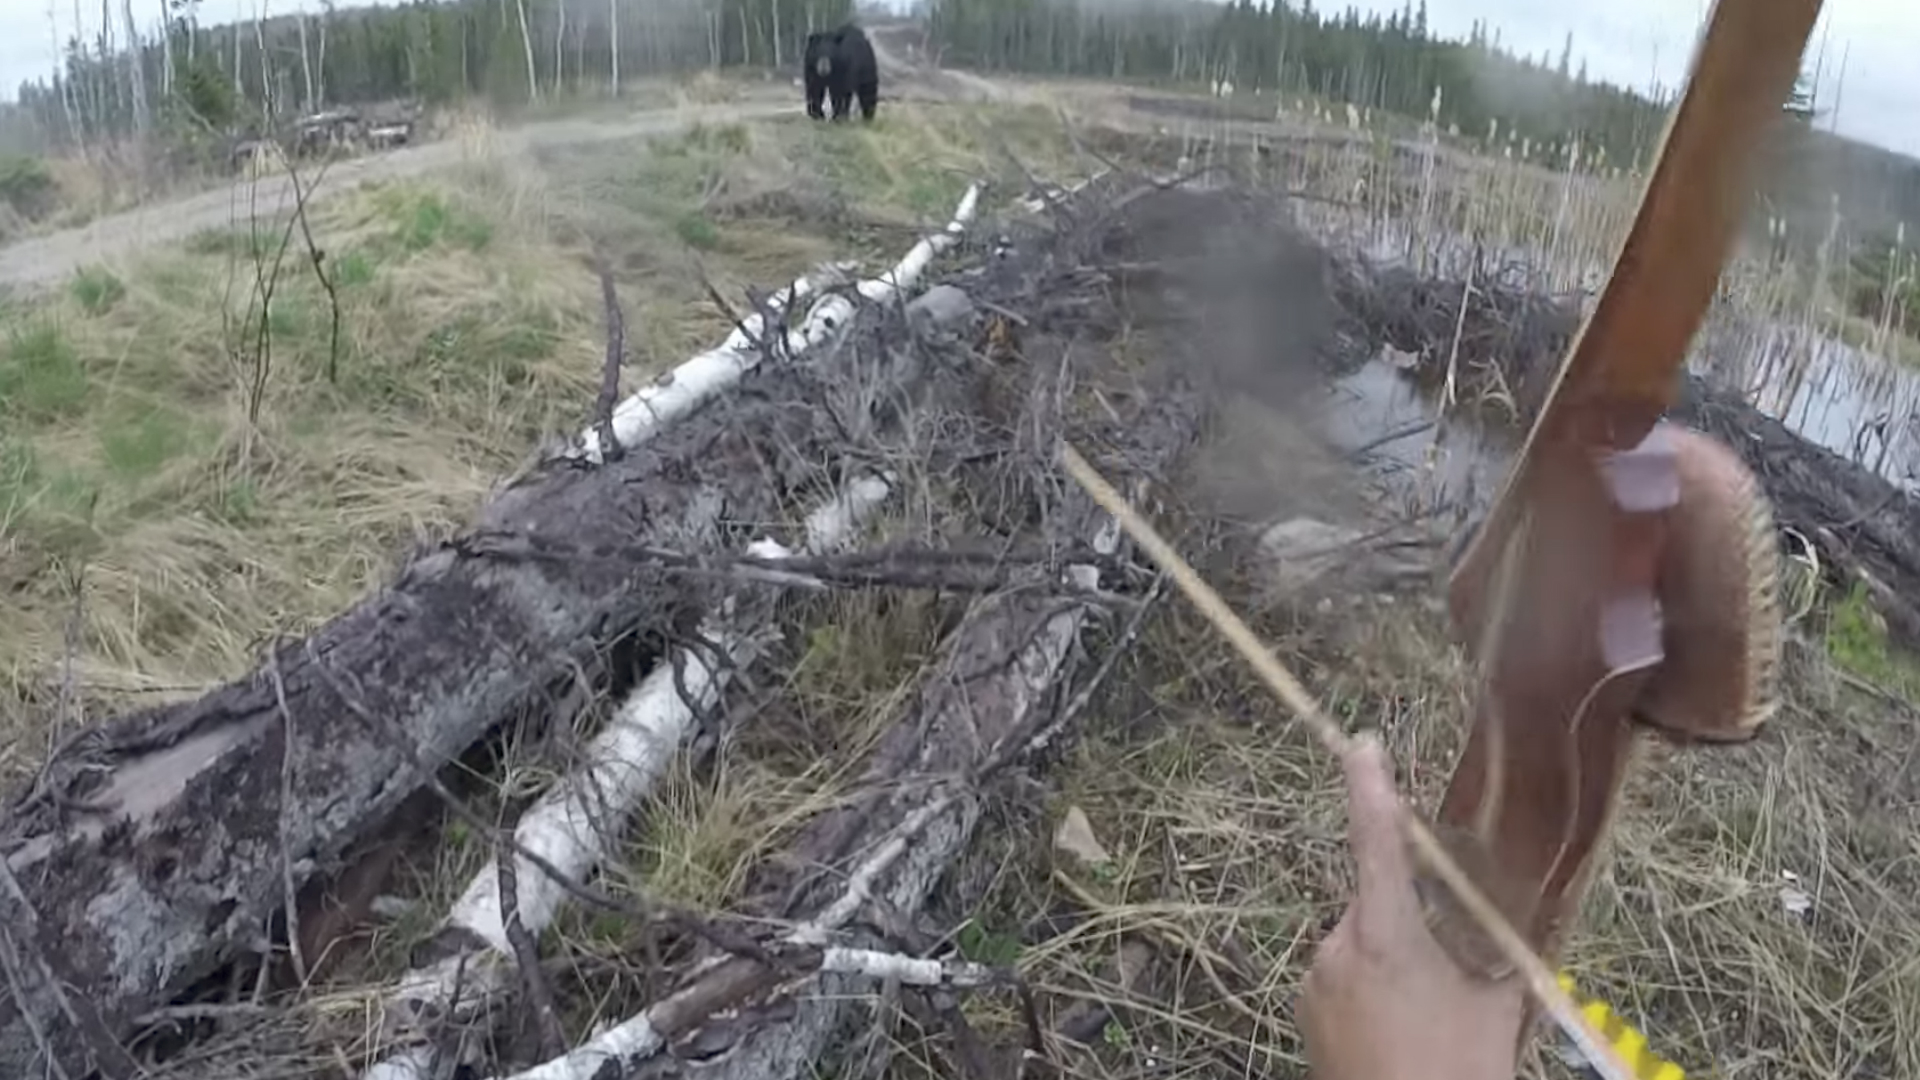 Bow and arrow hunter attacked by a bear